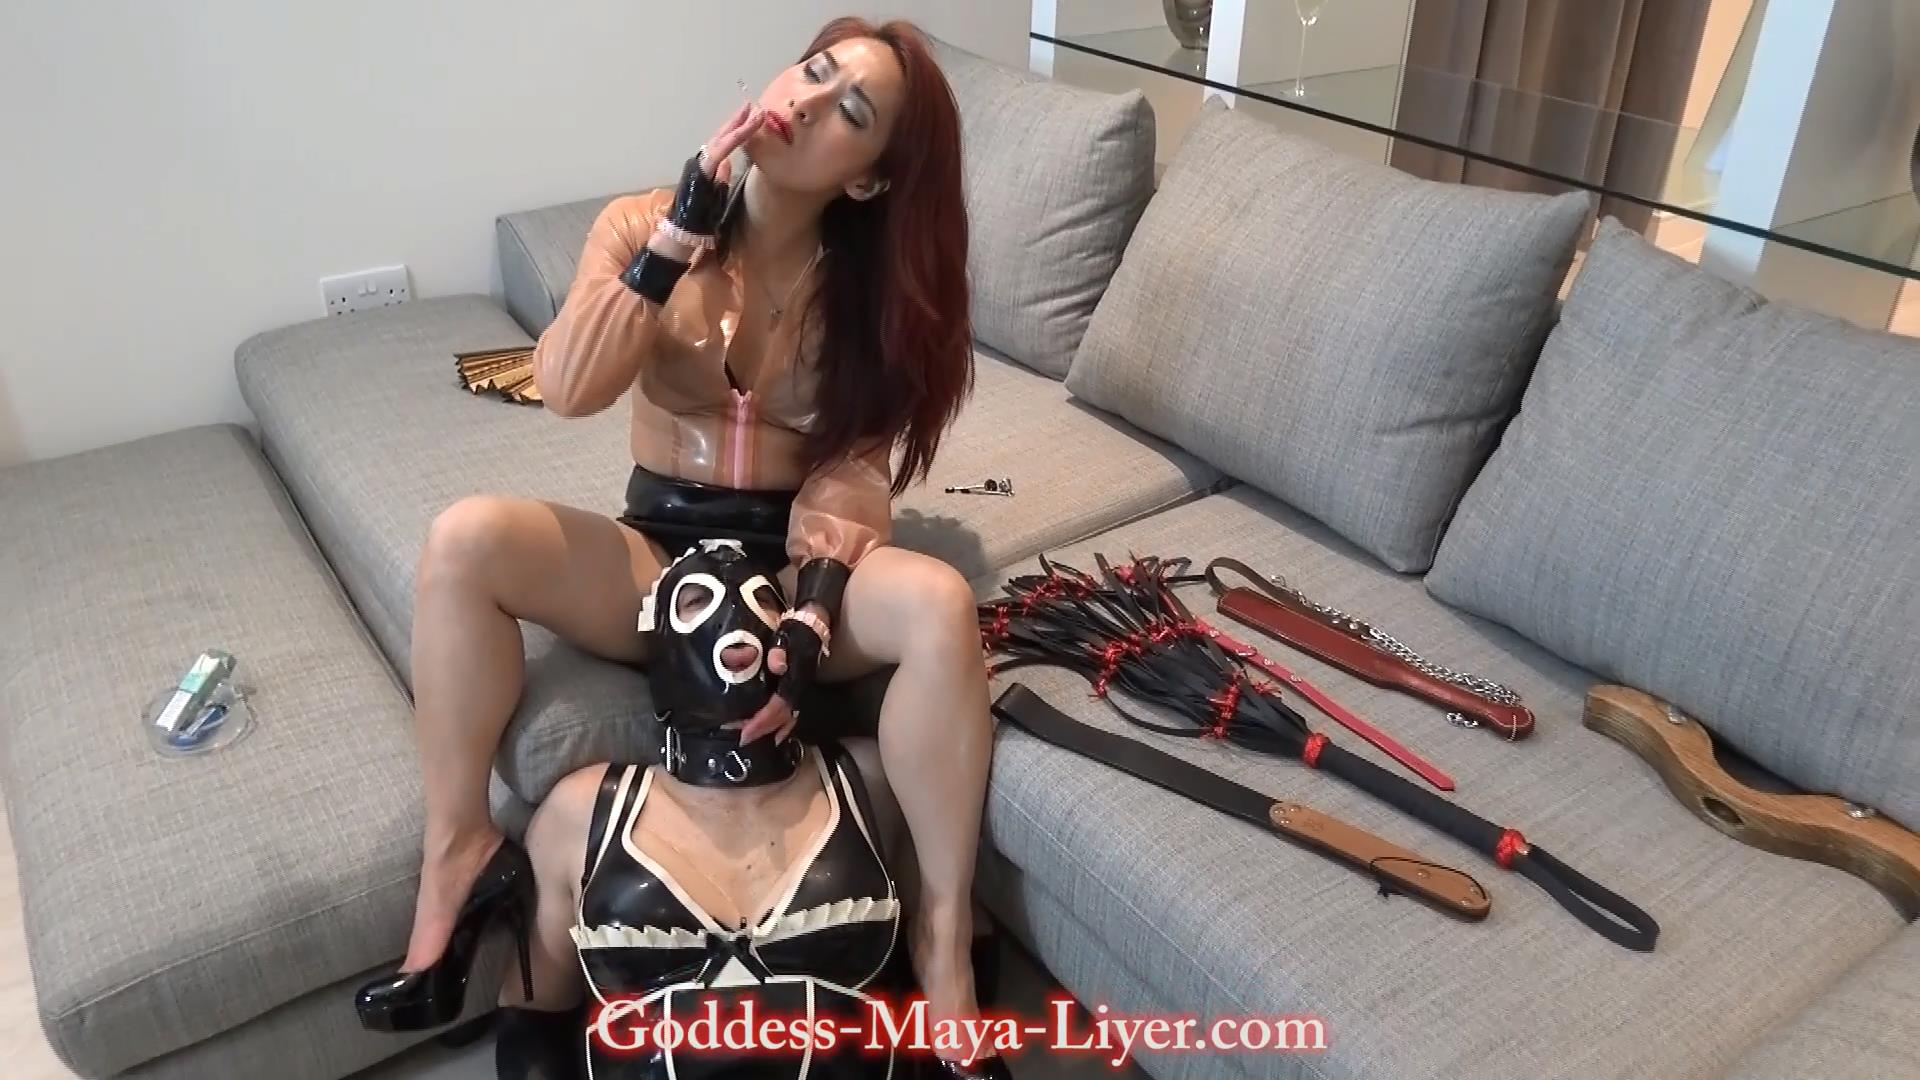 Goddess Maya Liyer In Scene: Nervous Latex Maid in training - REAL-FEMDOM-CLIPS - FULL HD/1080p/MP4